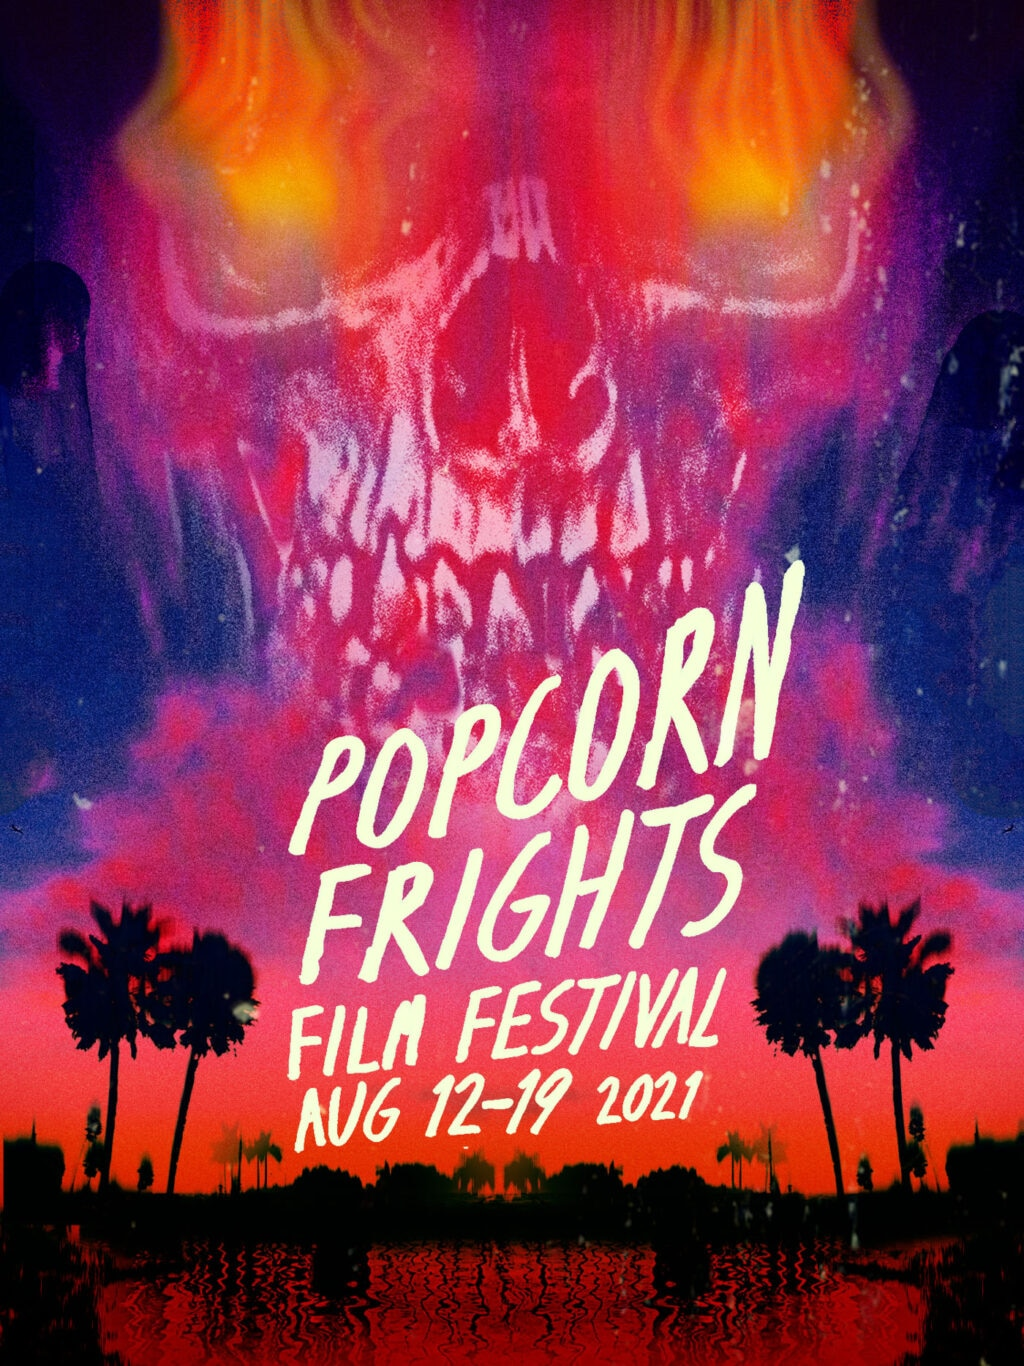 Popcorn Frights Film Festival 2021 Poster 1024x1366 - Popcorn Frights Announces First Wave Of Programming For Upcoming In-Theater Festival